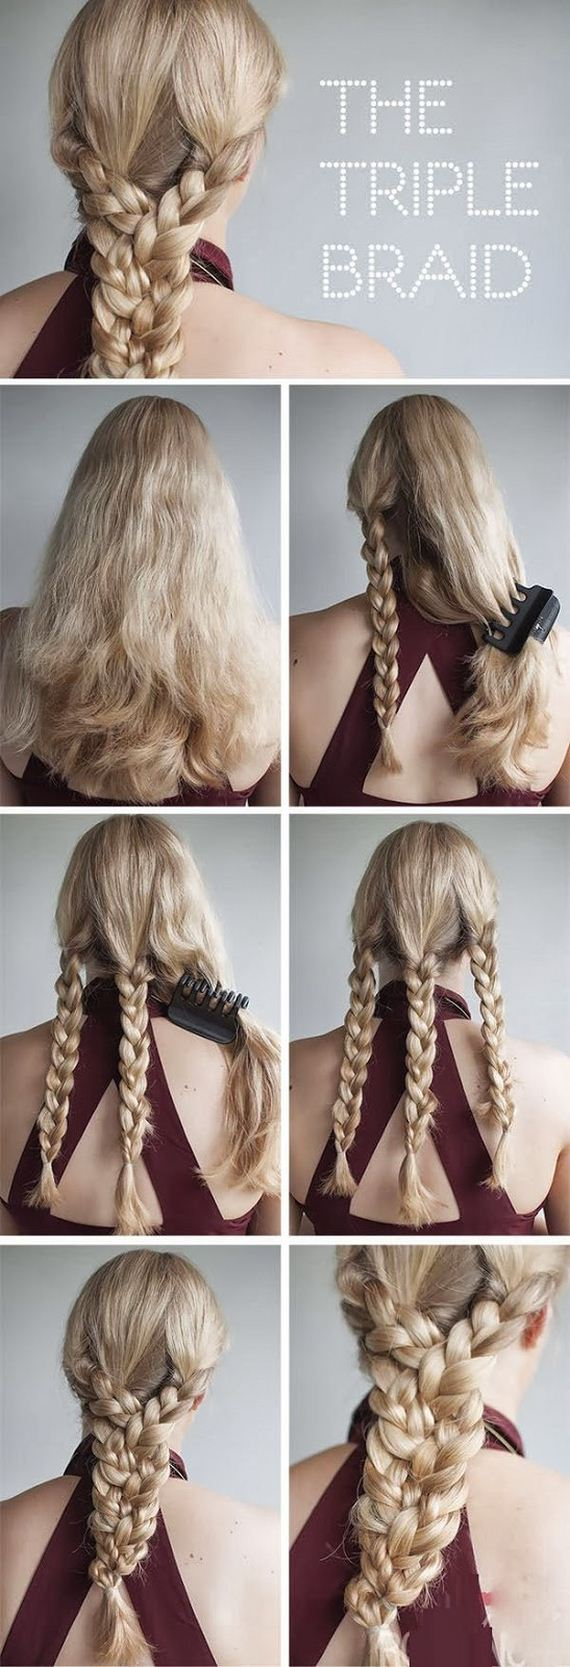 03-short-hair-braided-tutorial